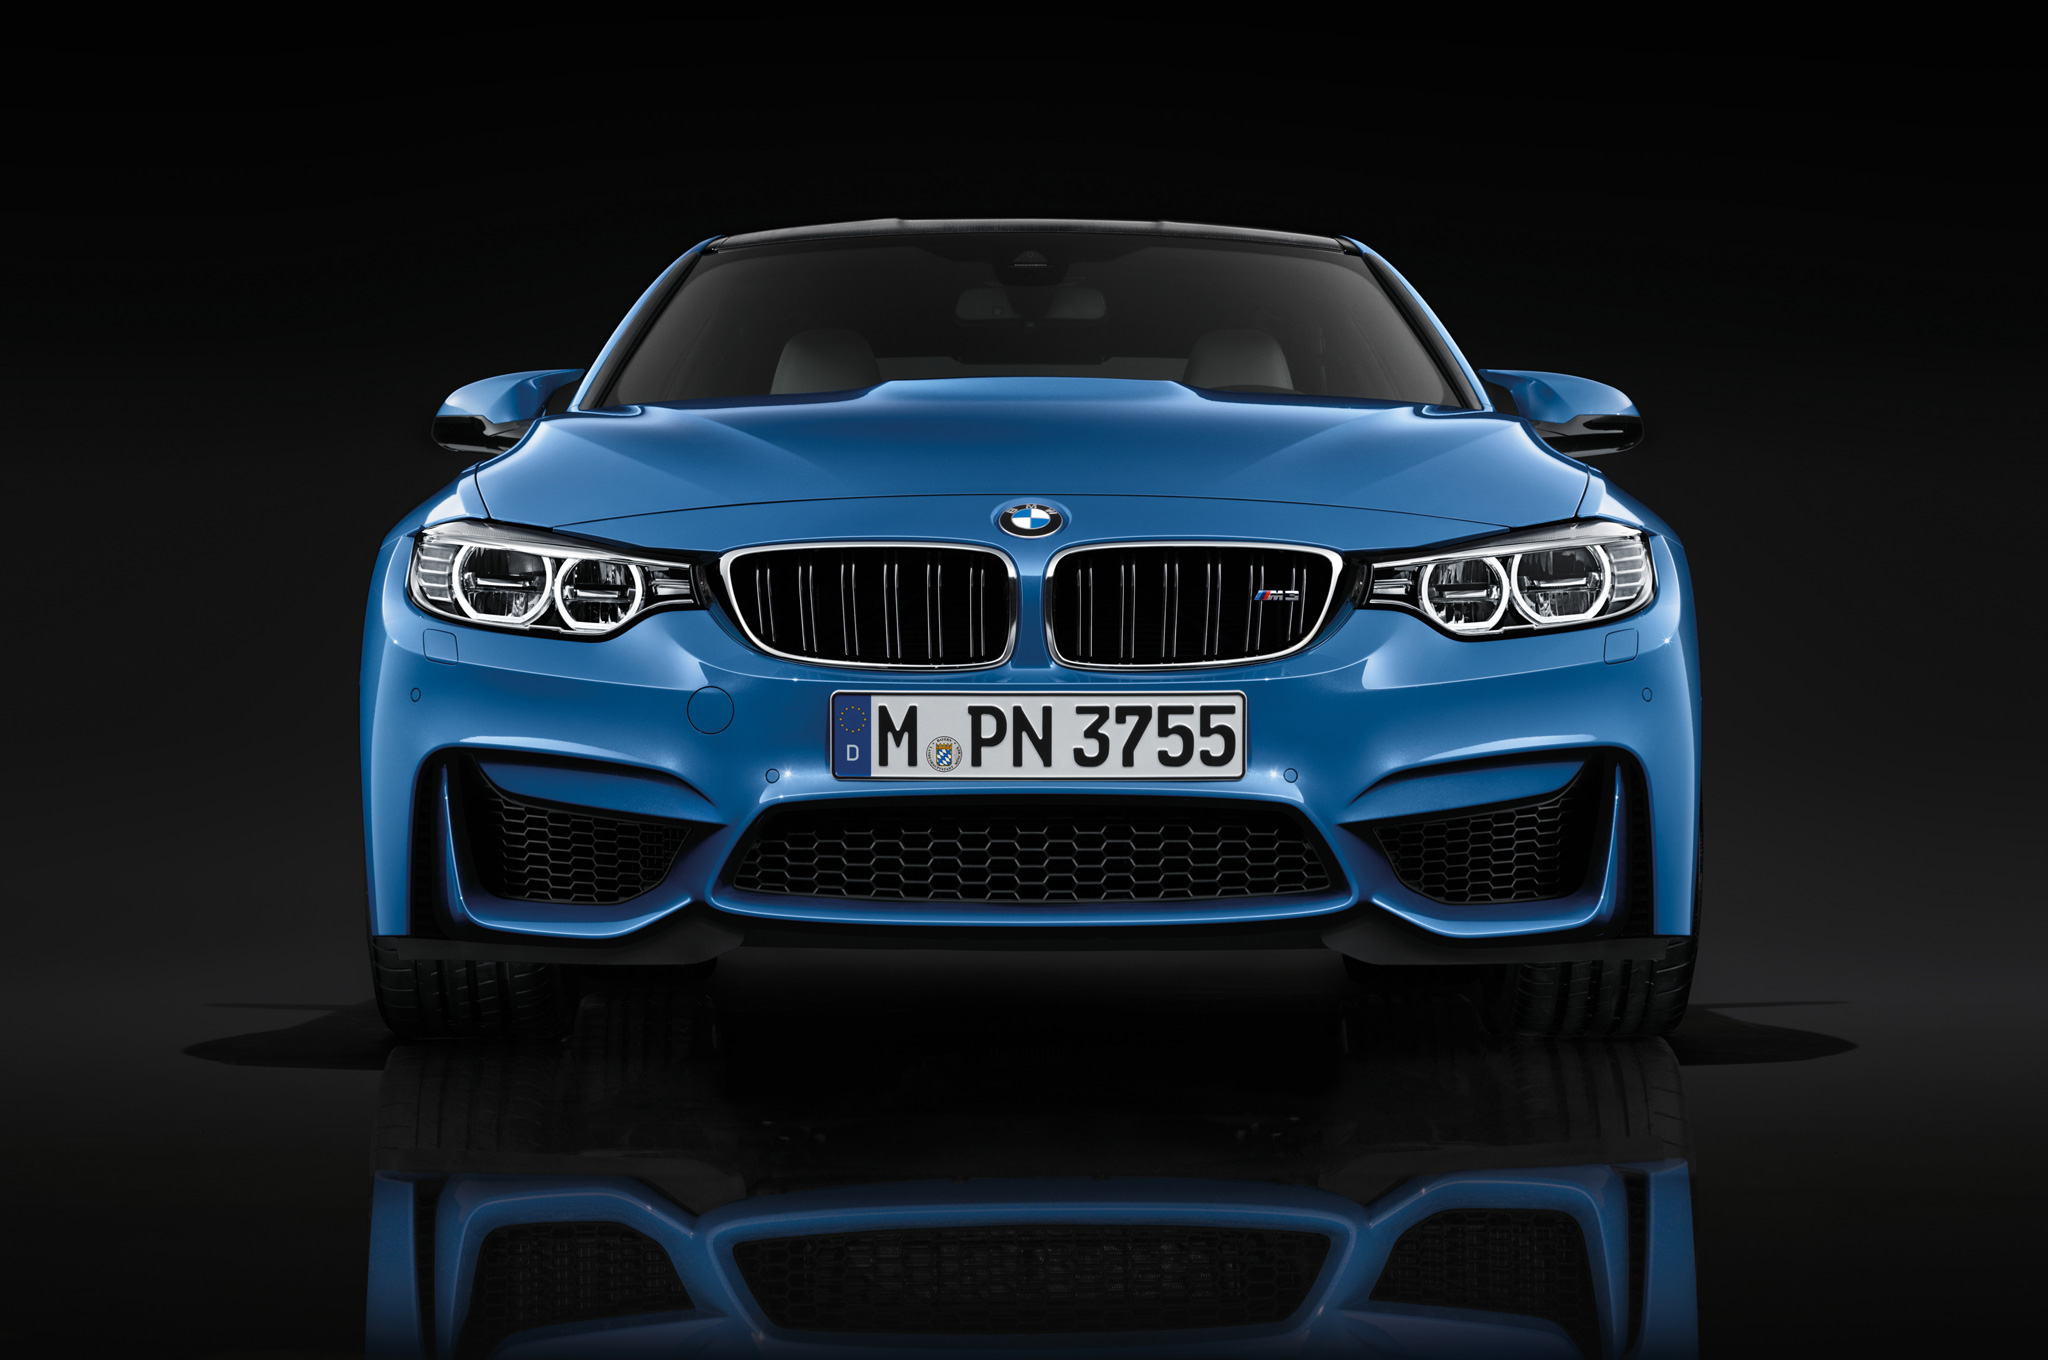 2015 Bmw M3 Blue Front View (Photo 42 of 55)